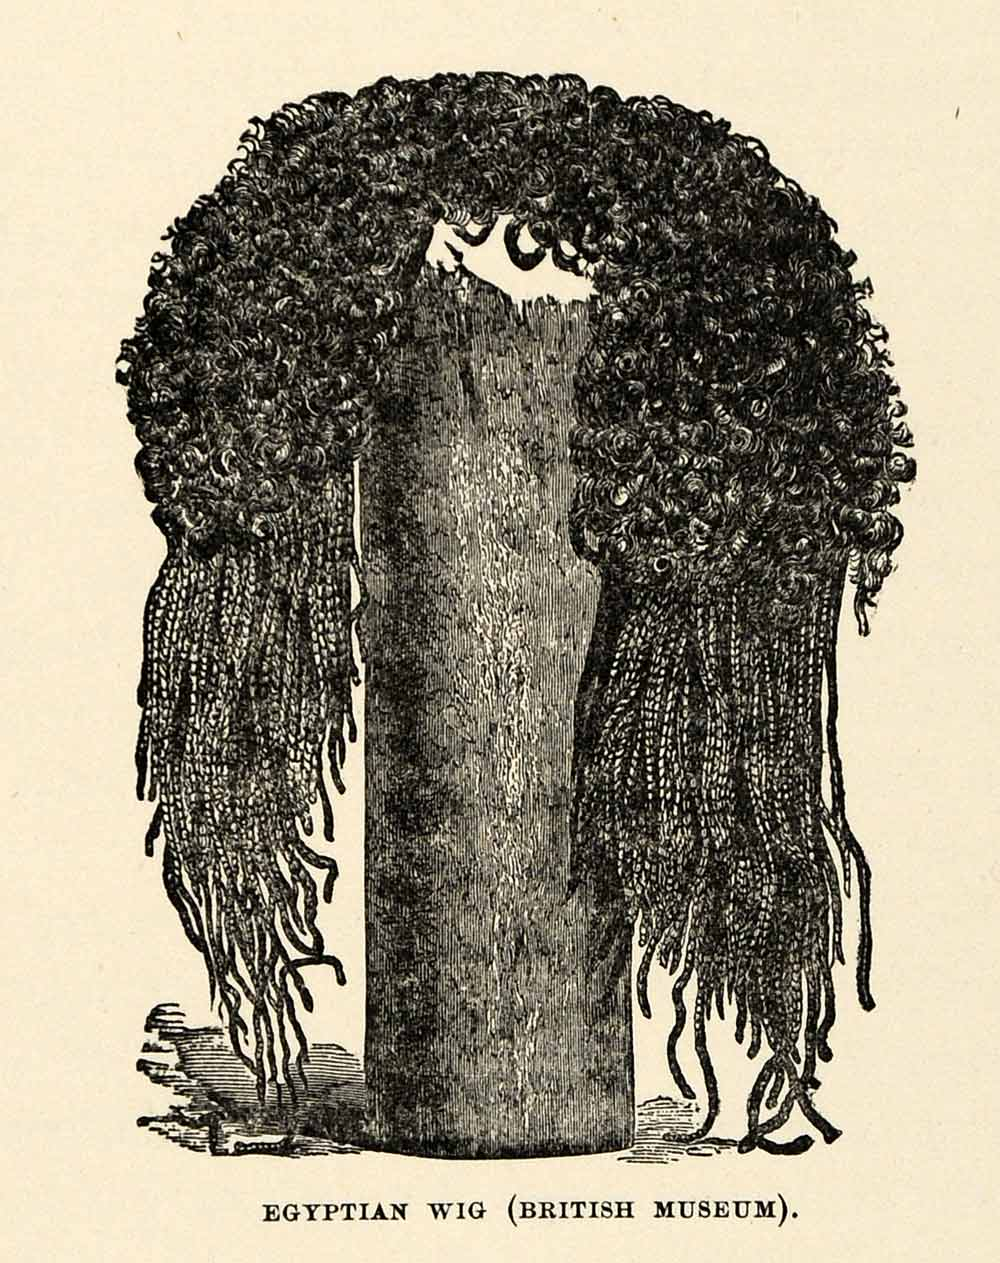 1904 Print Egypt Wig Hair Fashion Costume Headpiece Headdress Artifact XHA4